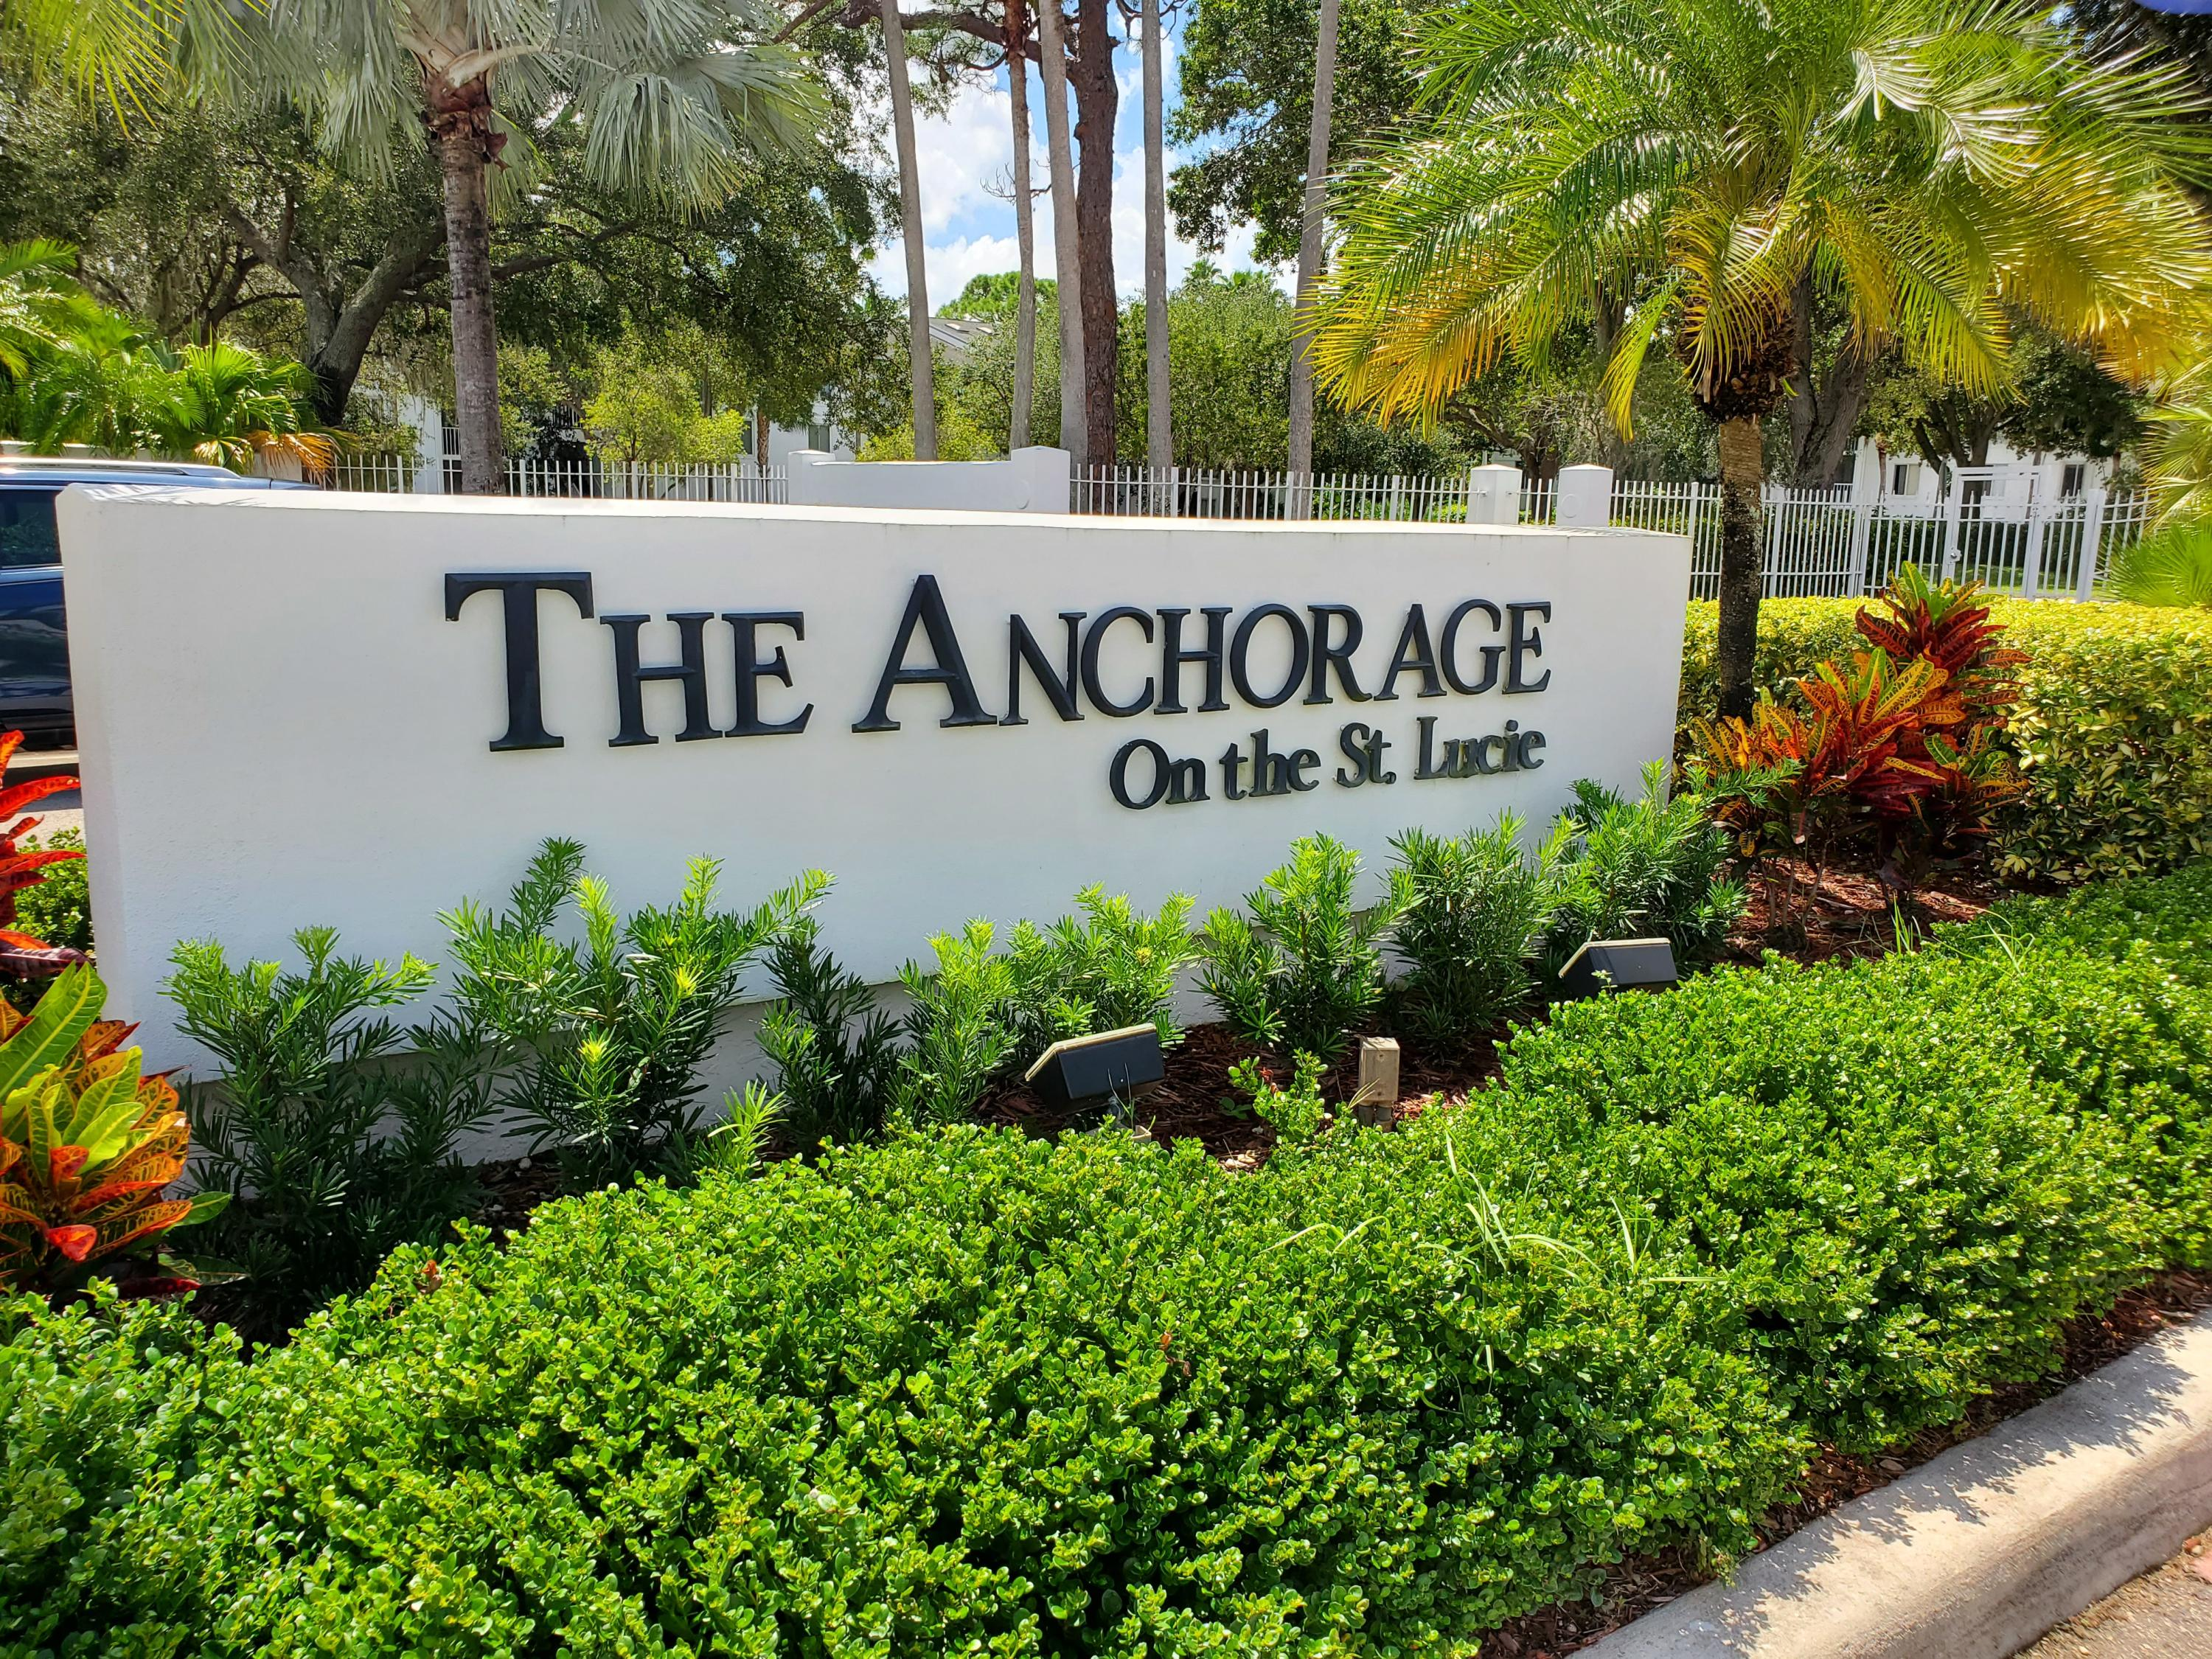 ANCHORAGE ON THE ST LUCIE REAL ESTATE